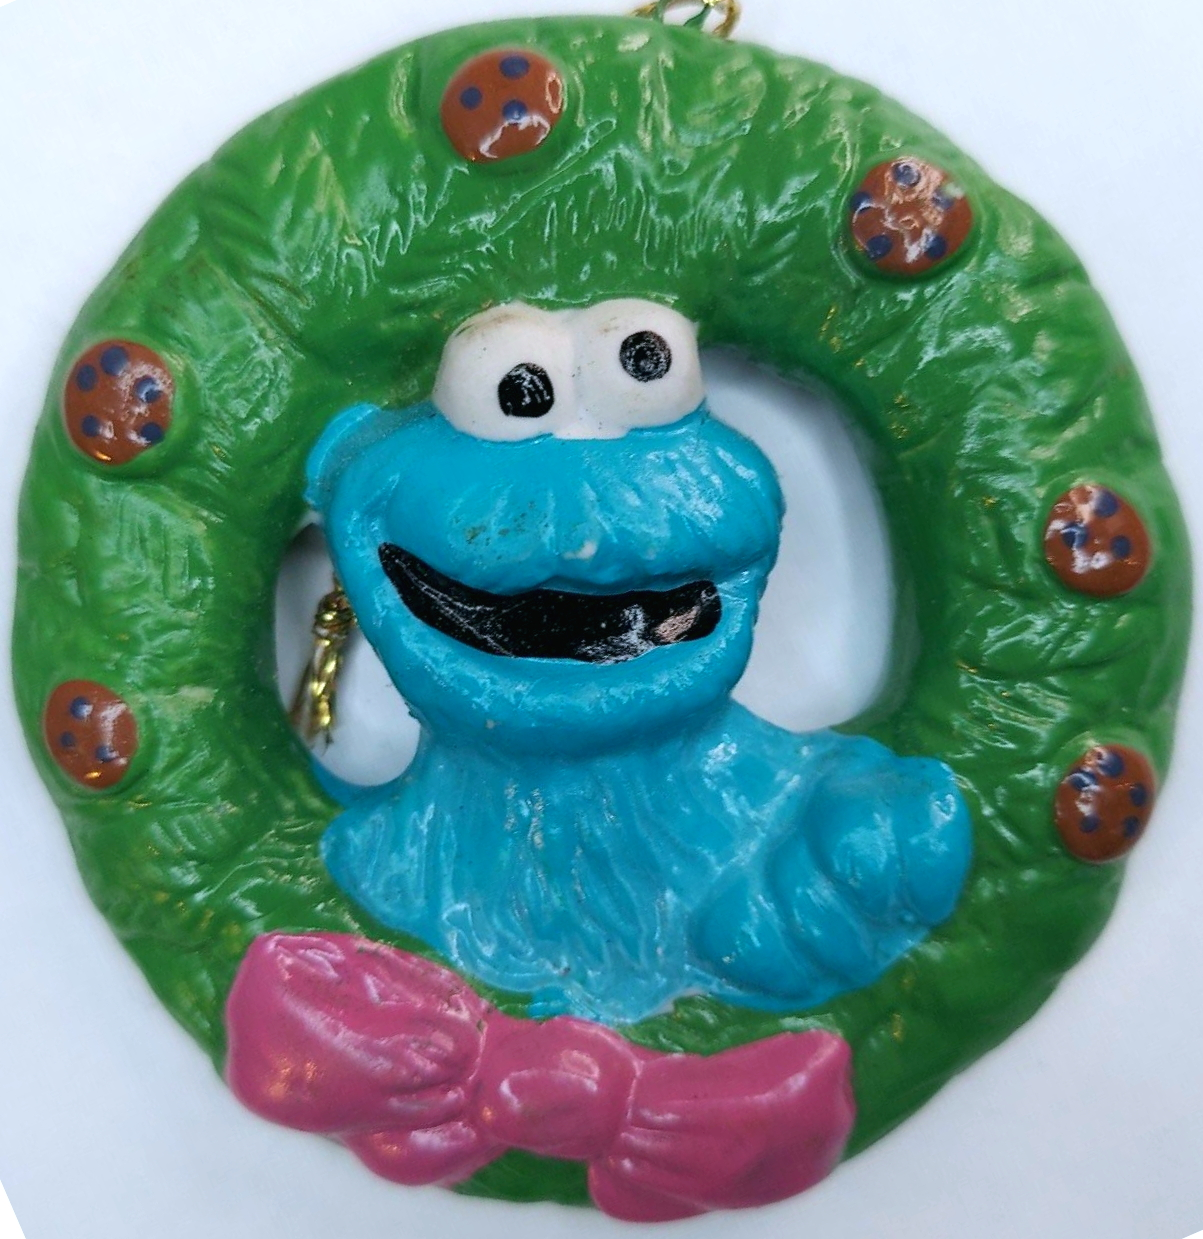 File:Cookie monster newcor 1988 christmas ornament wreath set 1.jpg